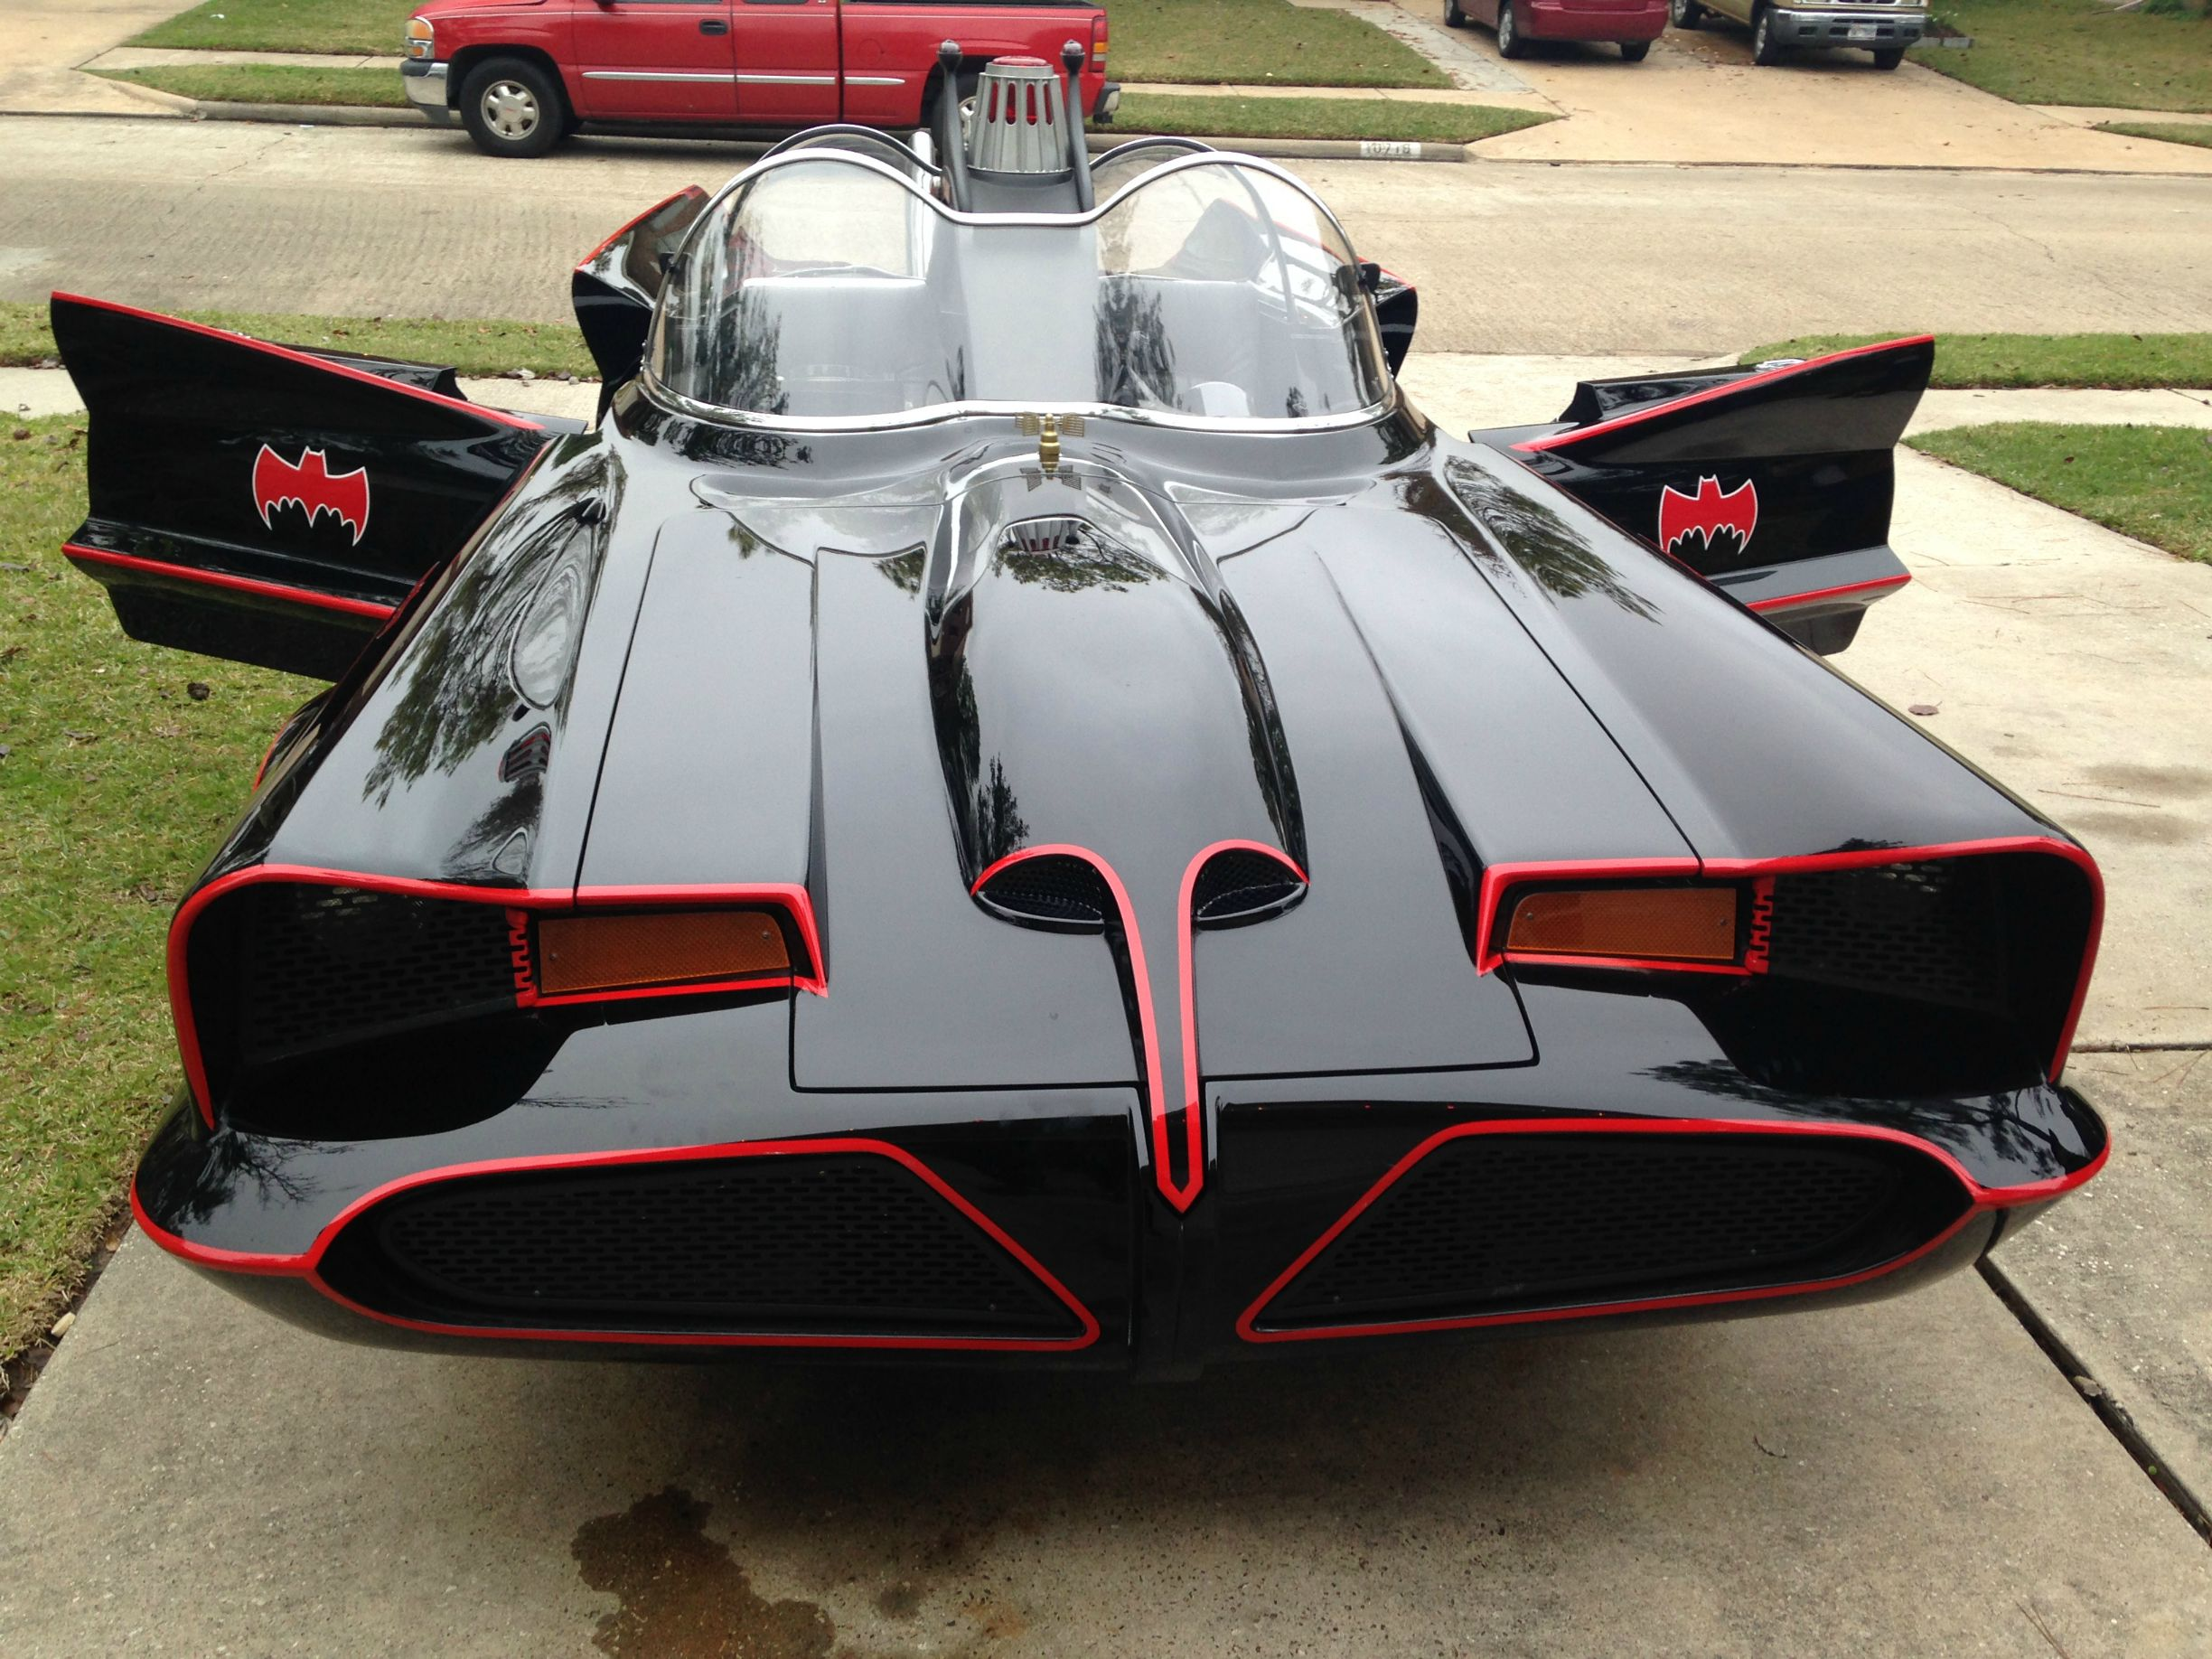 Porsche Usa Build >> 1966 Batmobile Replica Took 9 Years to Build, Texan Batman ...